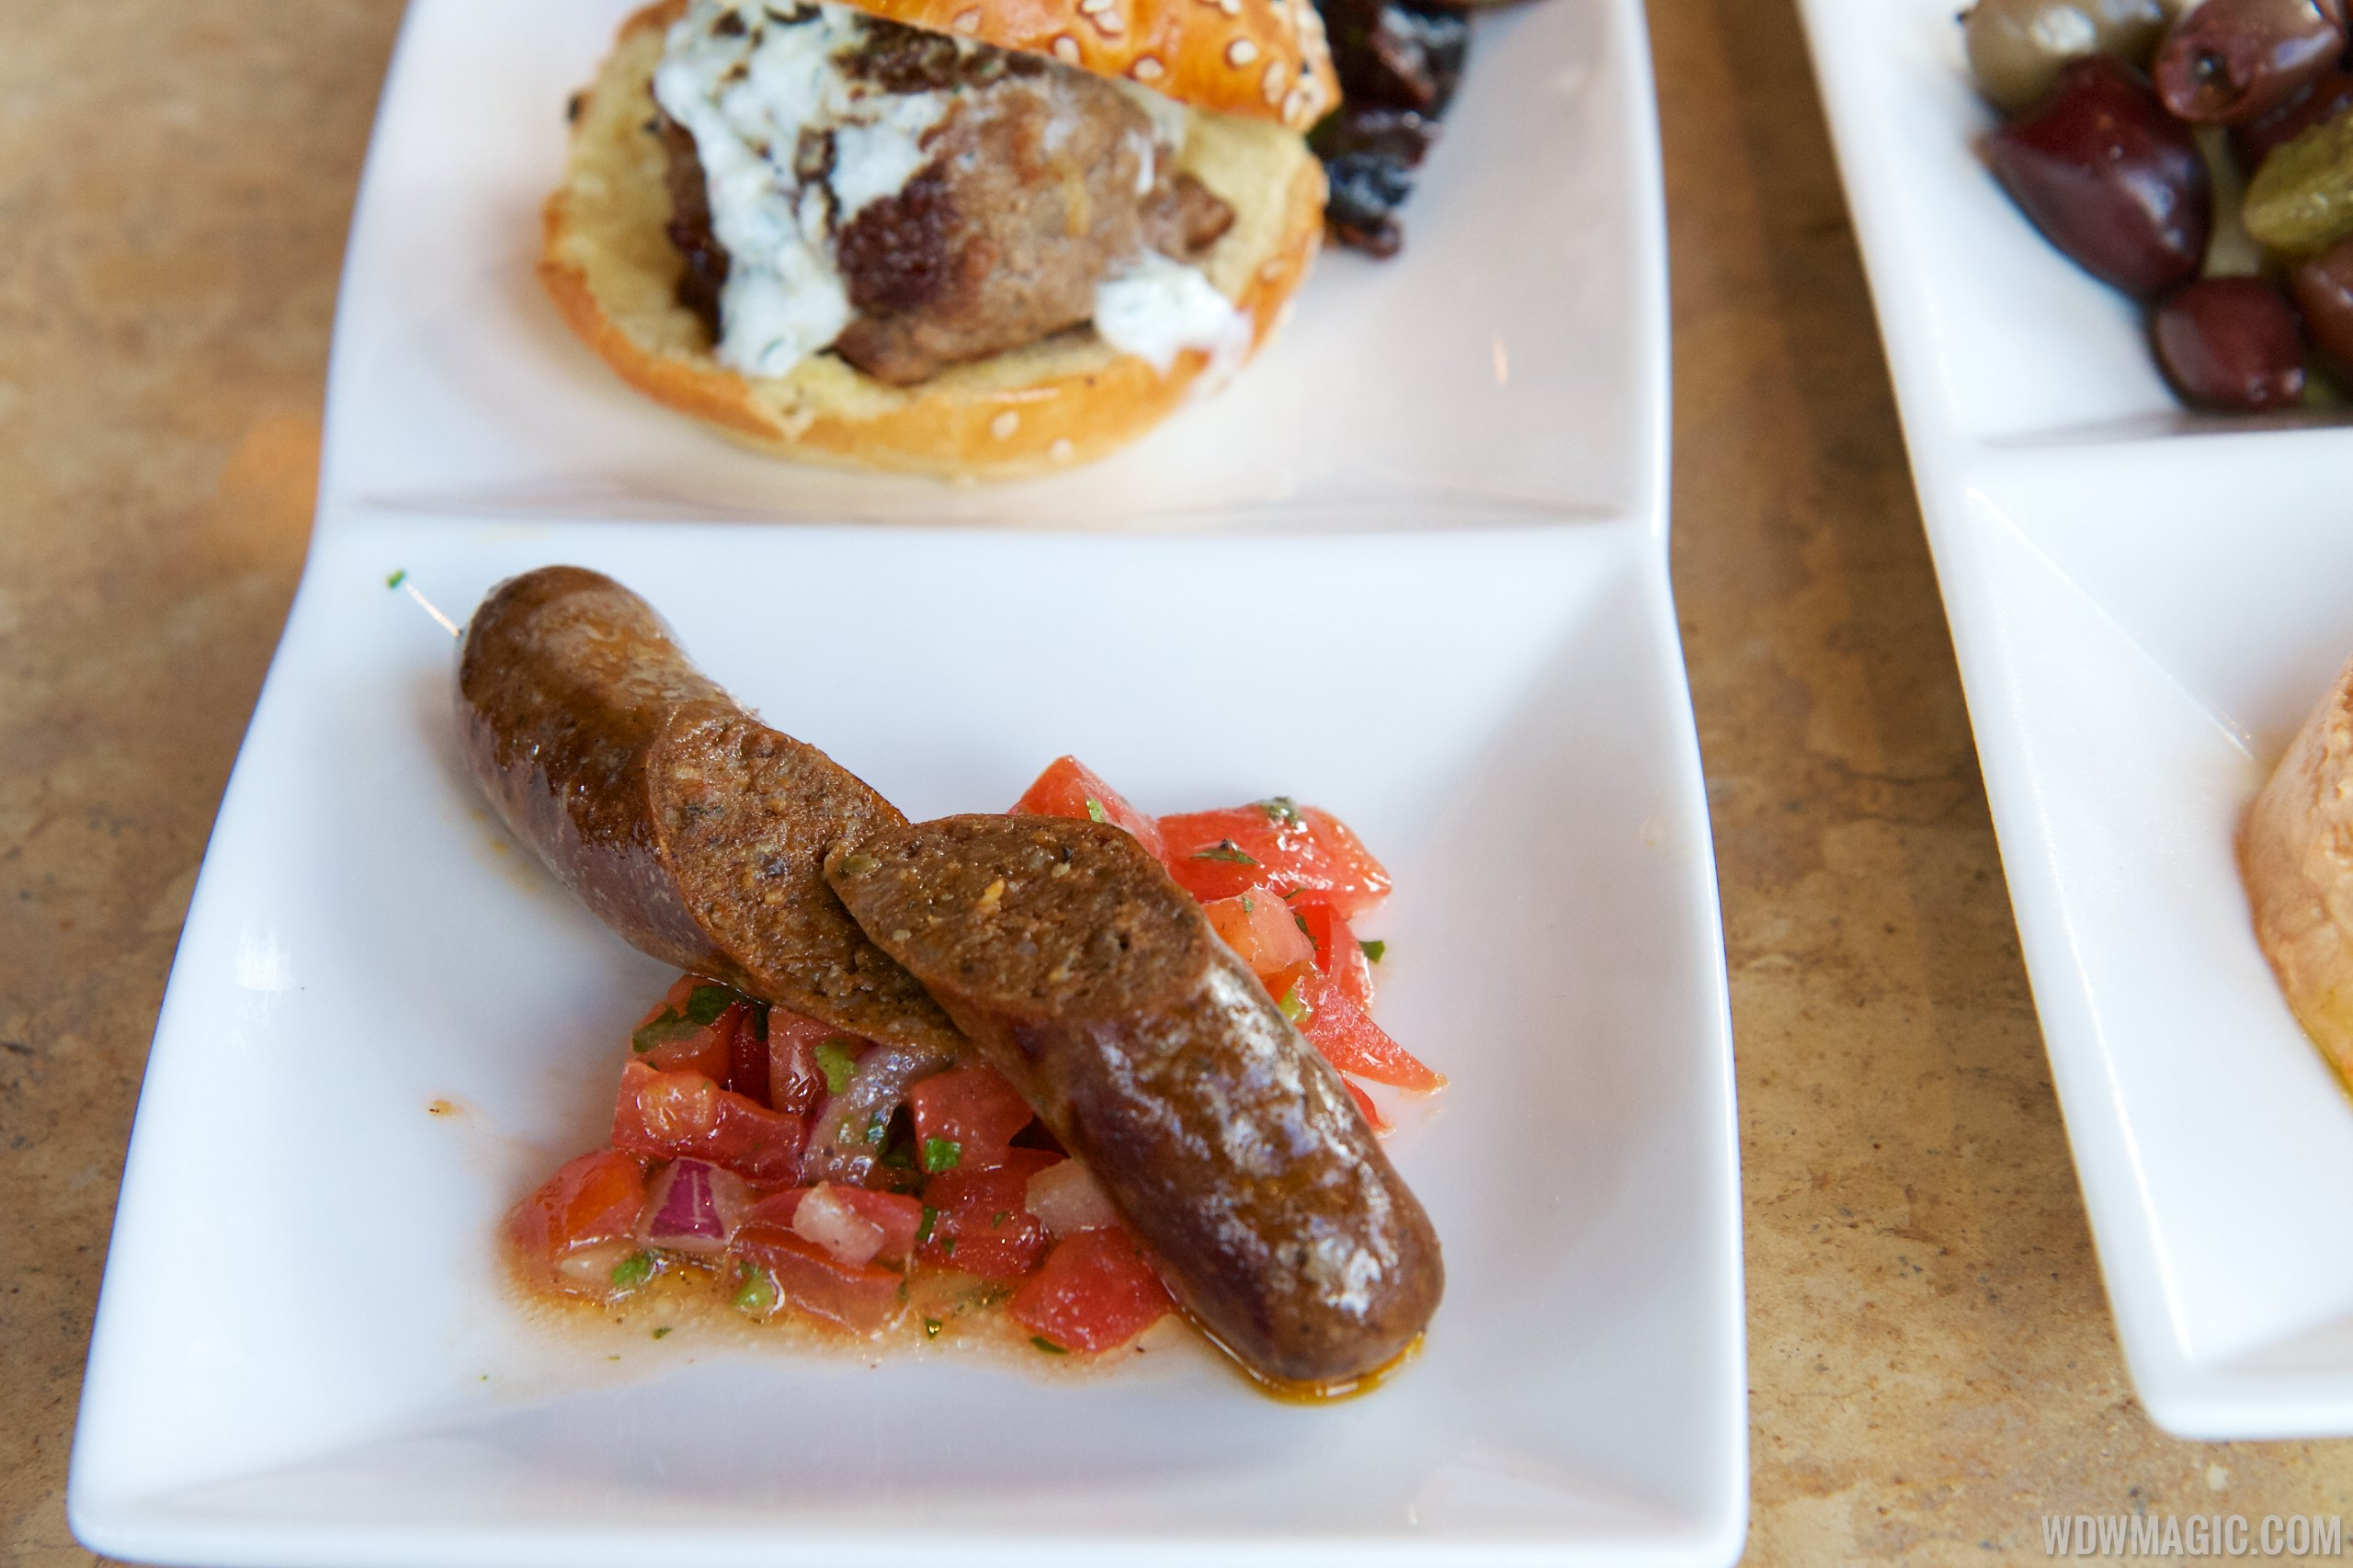 Spice Road Table - Merguez Sausage from the Tingis Sampler $16